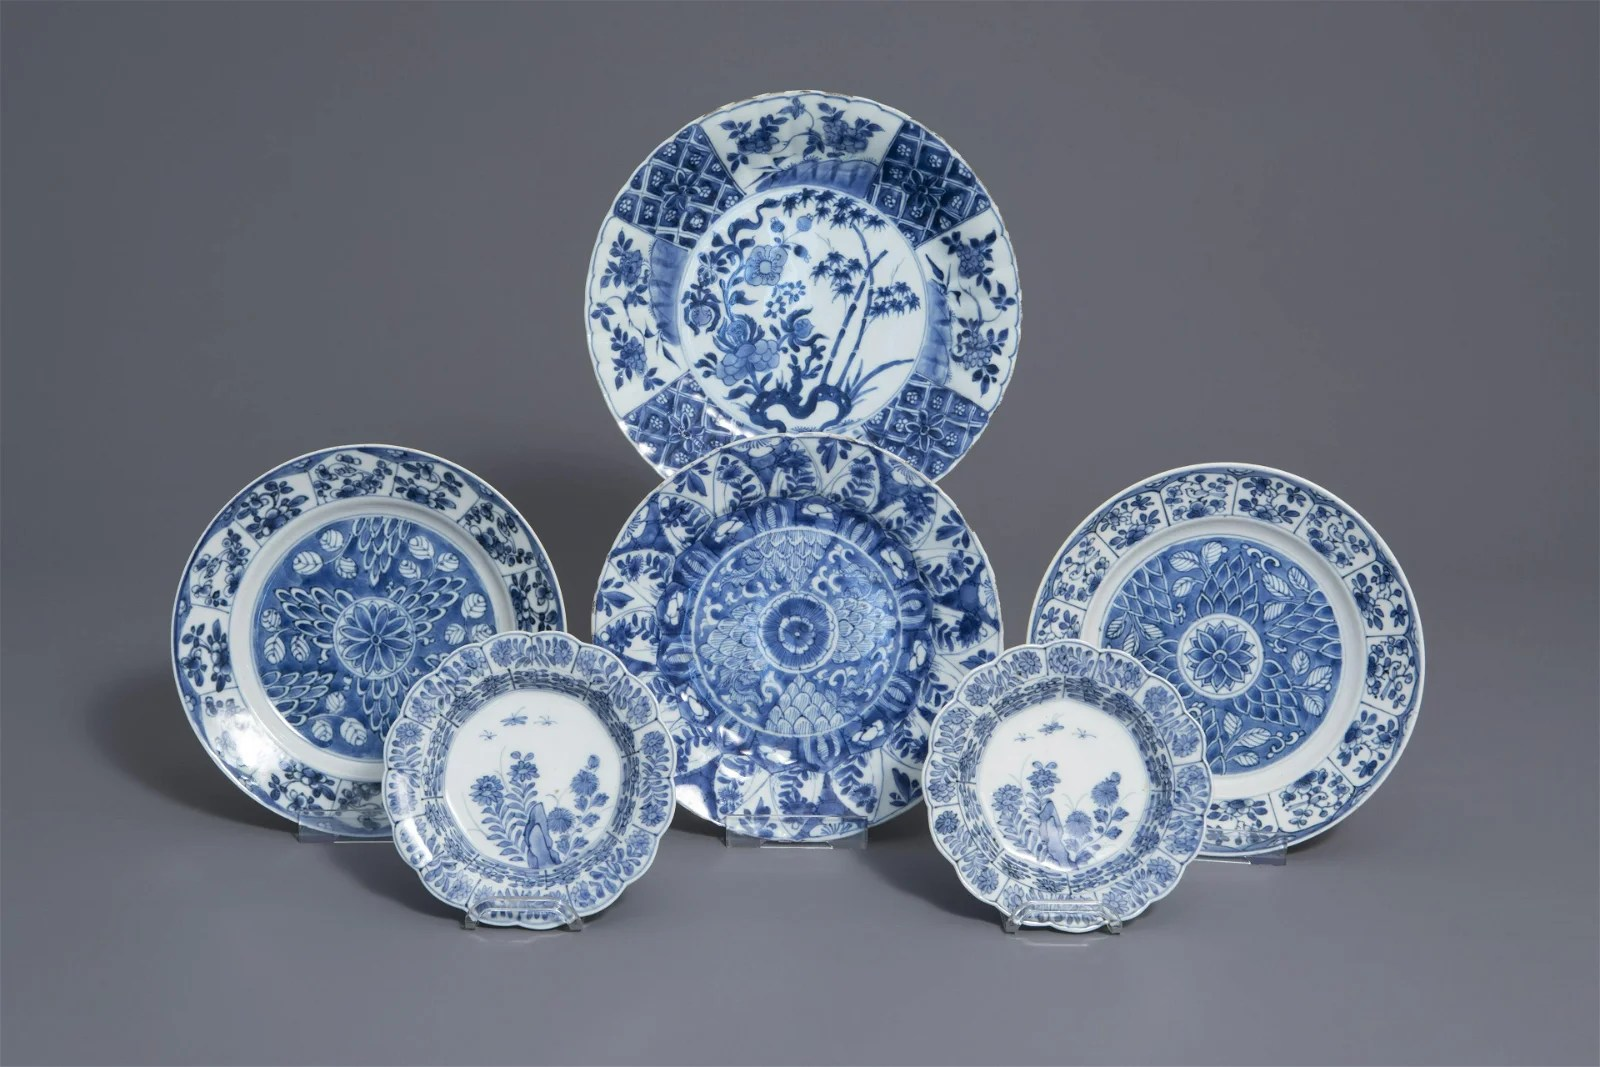 Six Chinese blue and white plates with floral design,